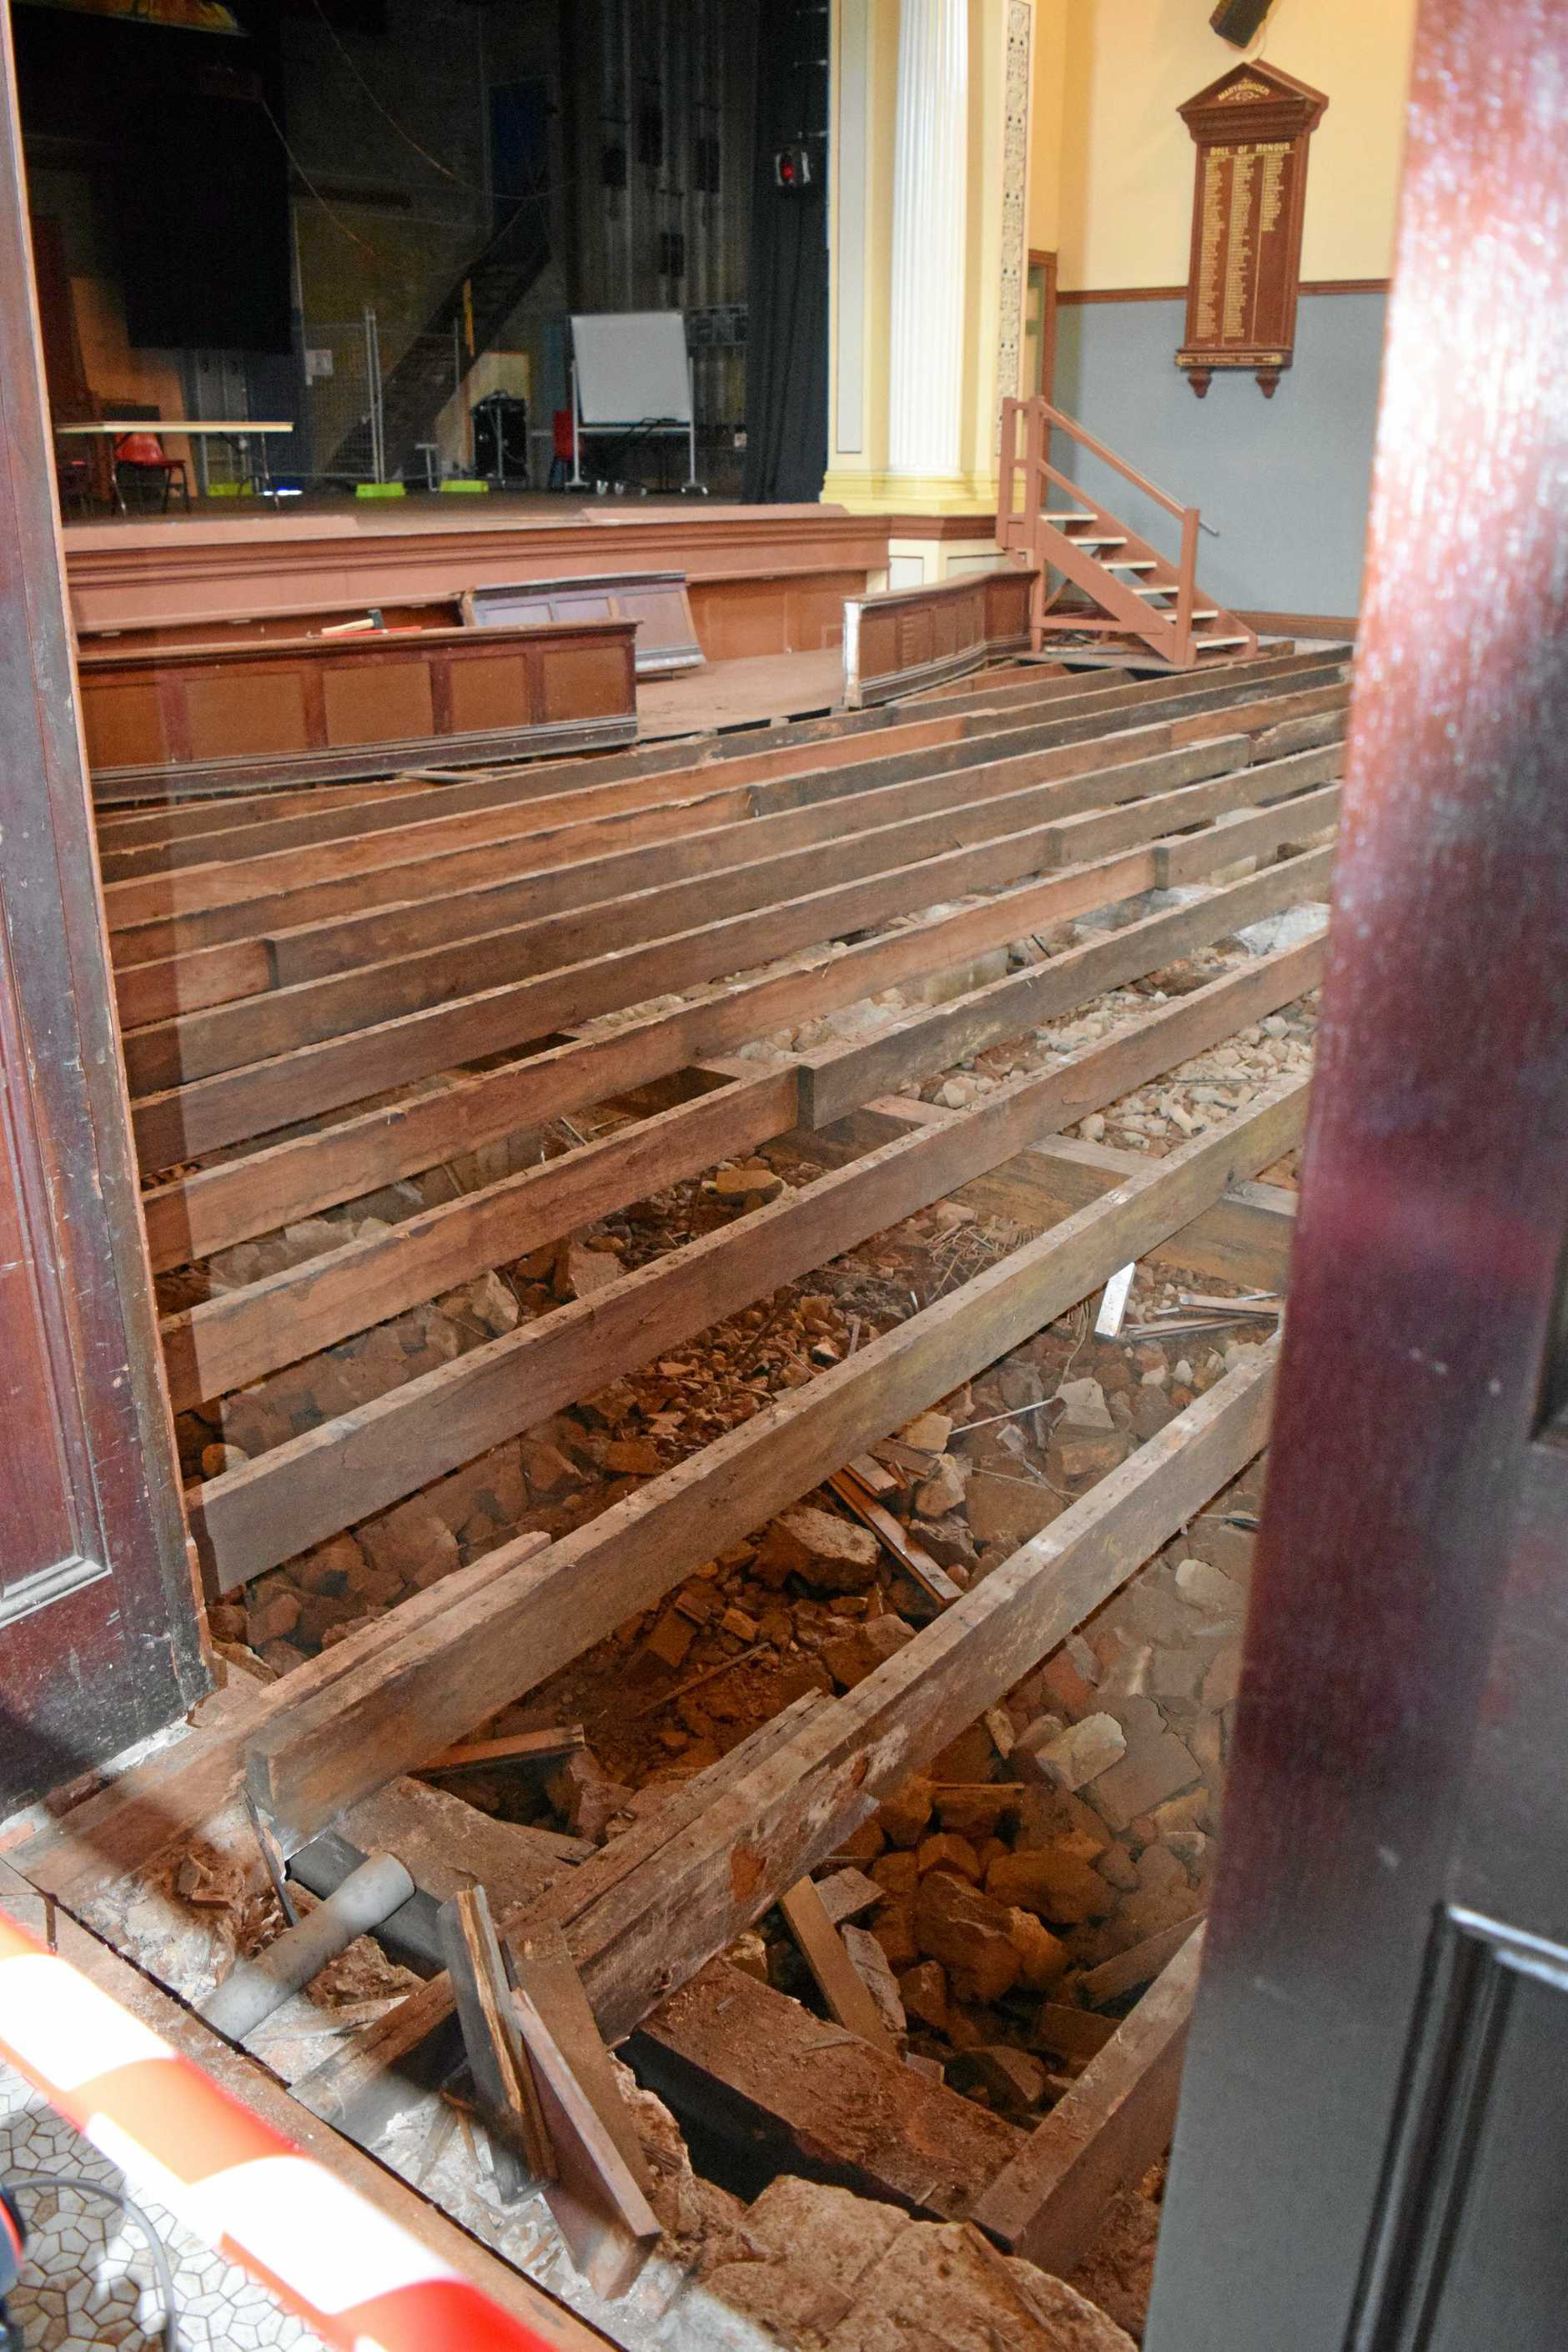 The Maryborough City Hall was closed for several months while the auditorium floor is being replaced.